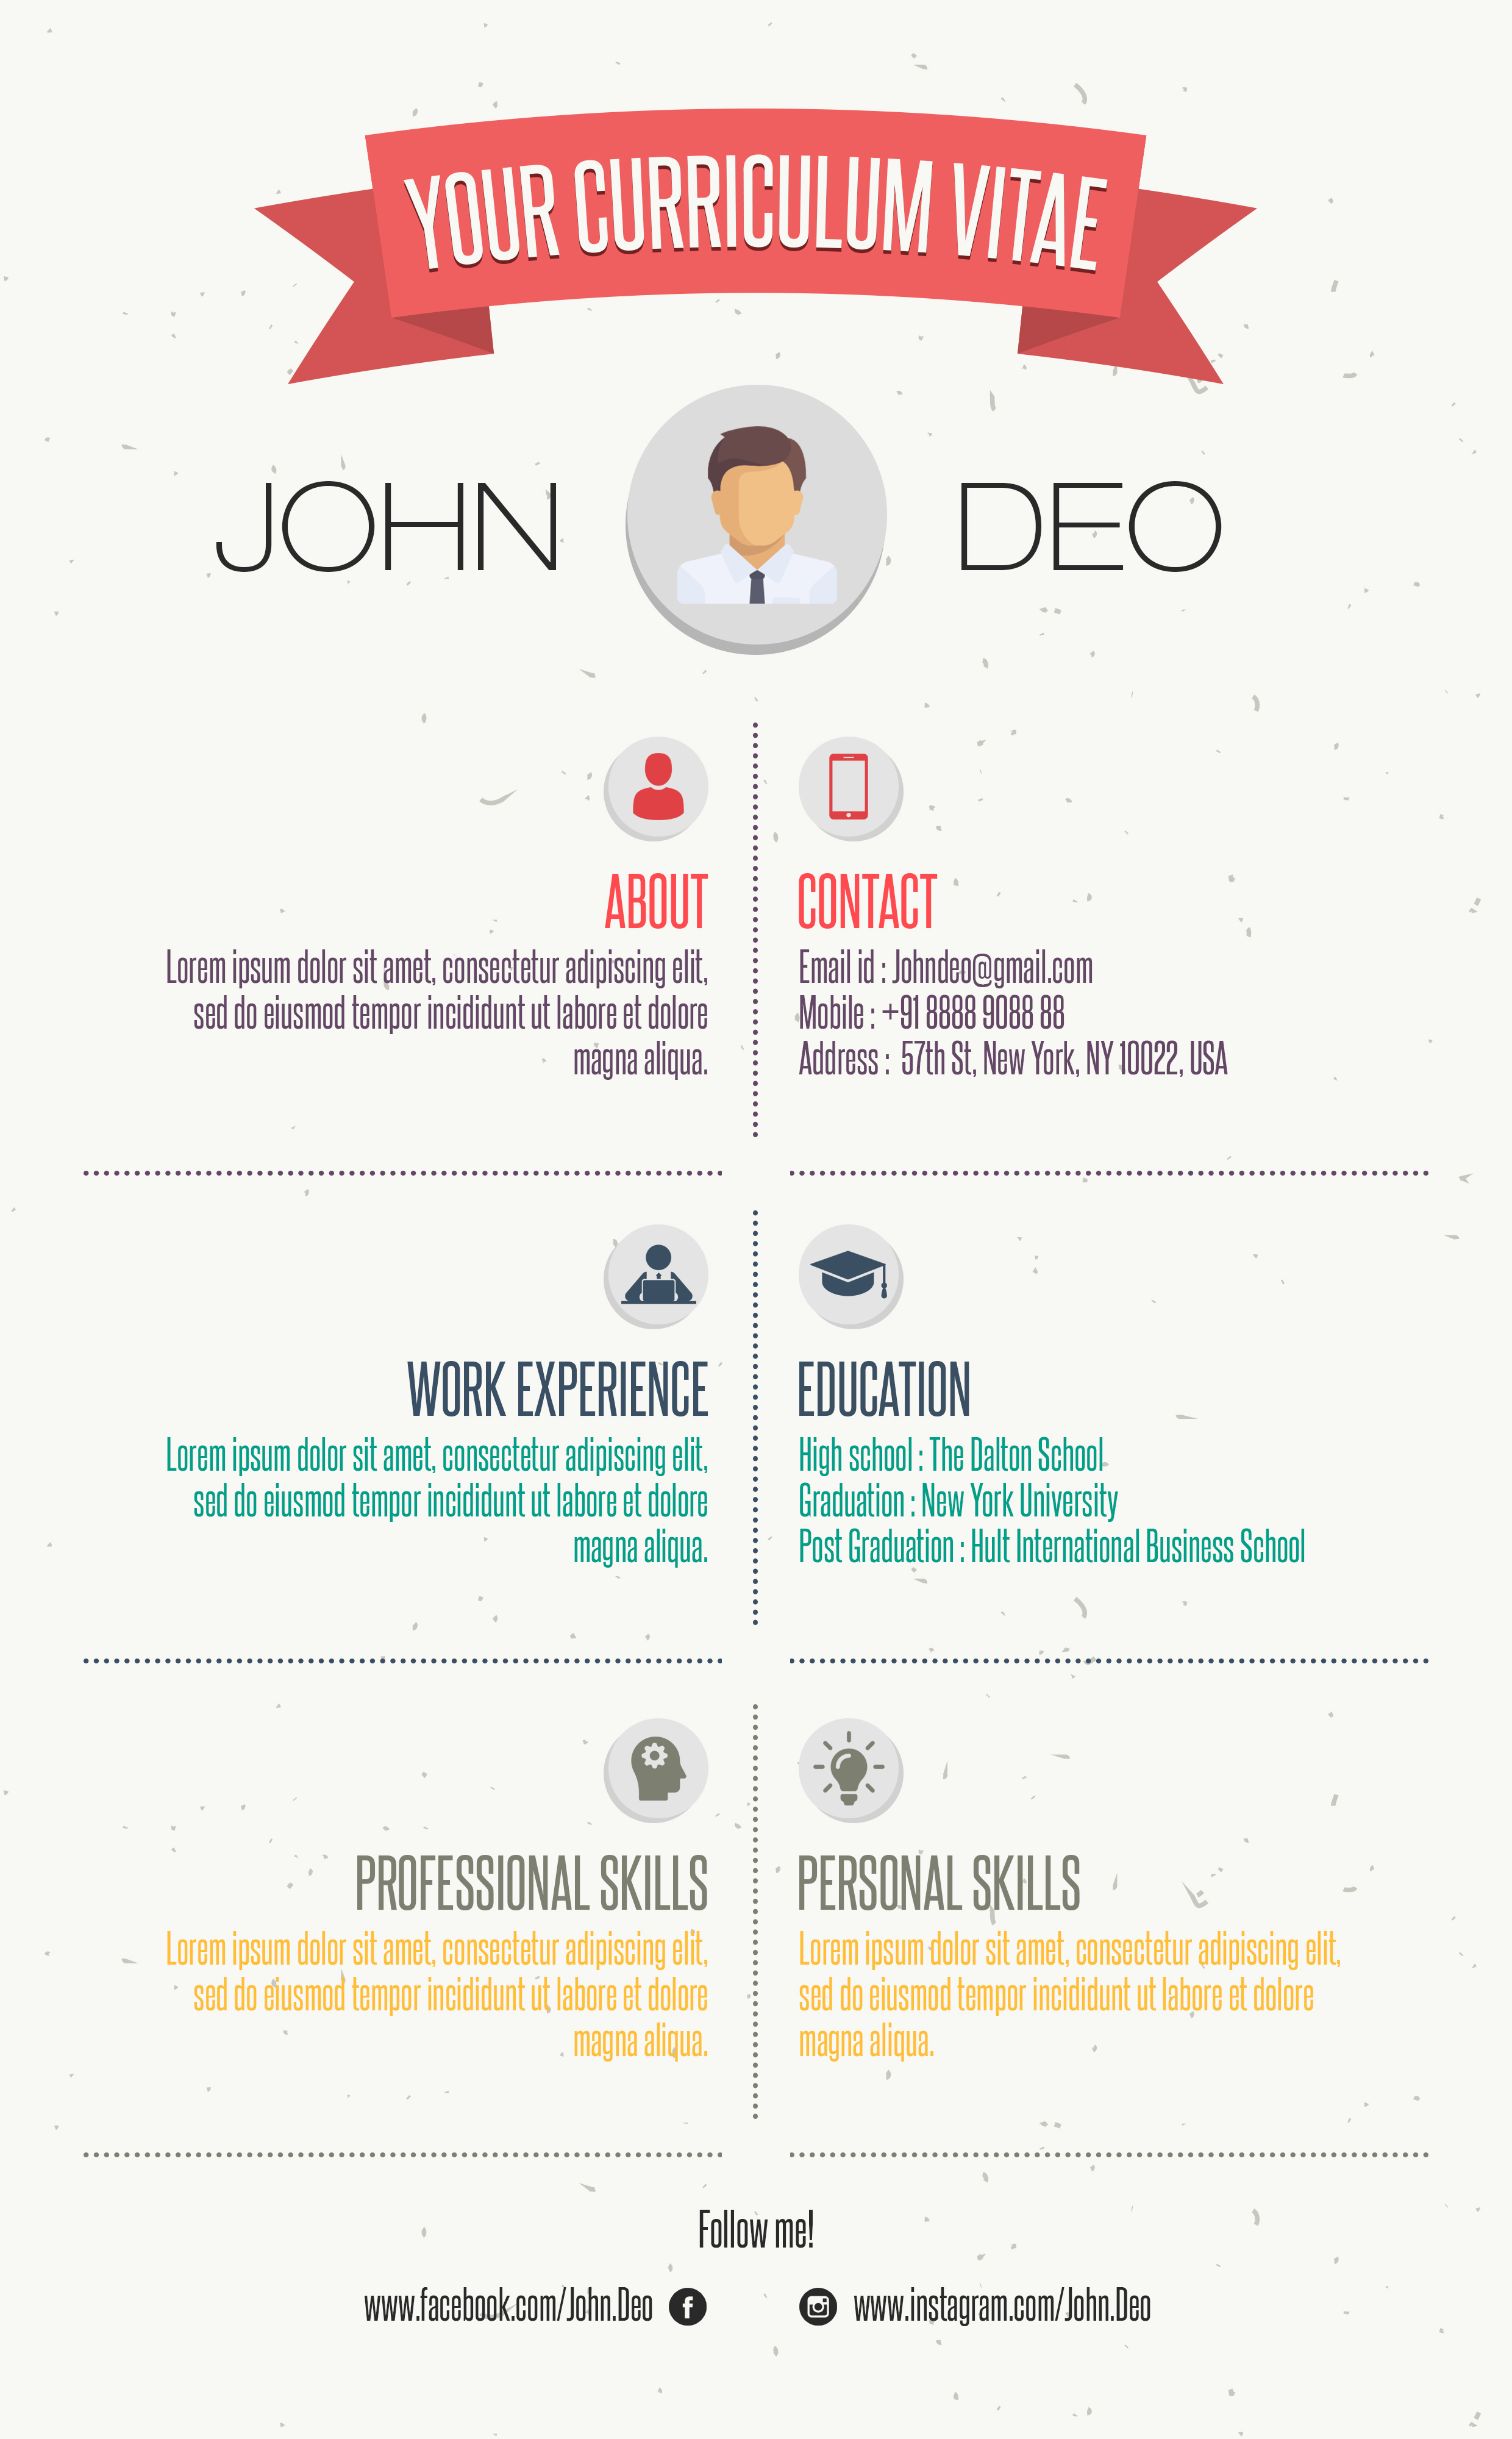 your curriculum vitae free resume template [infographic template]